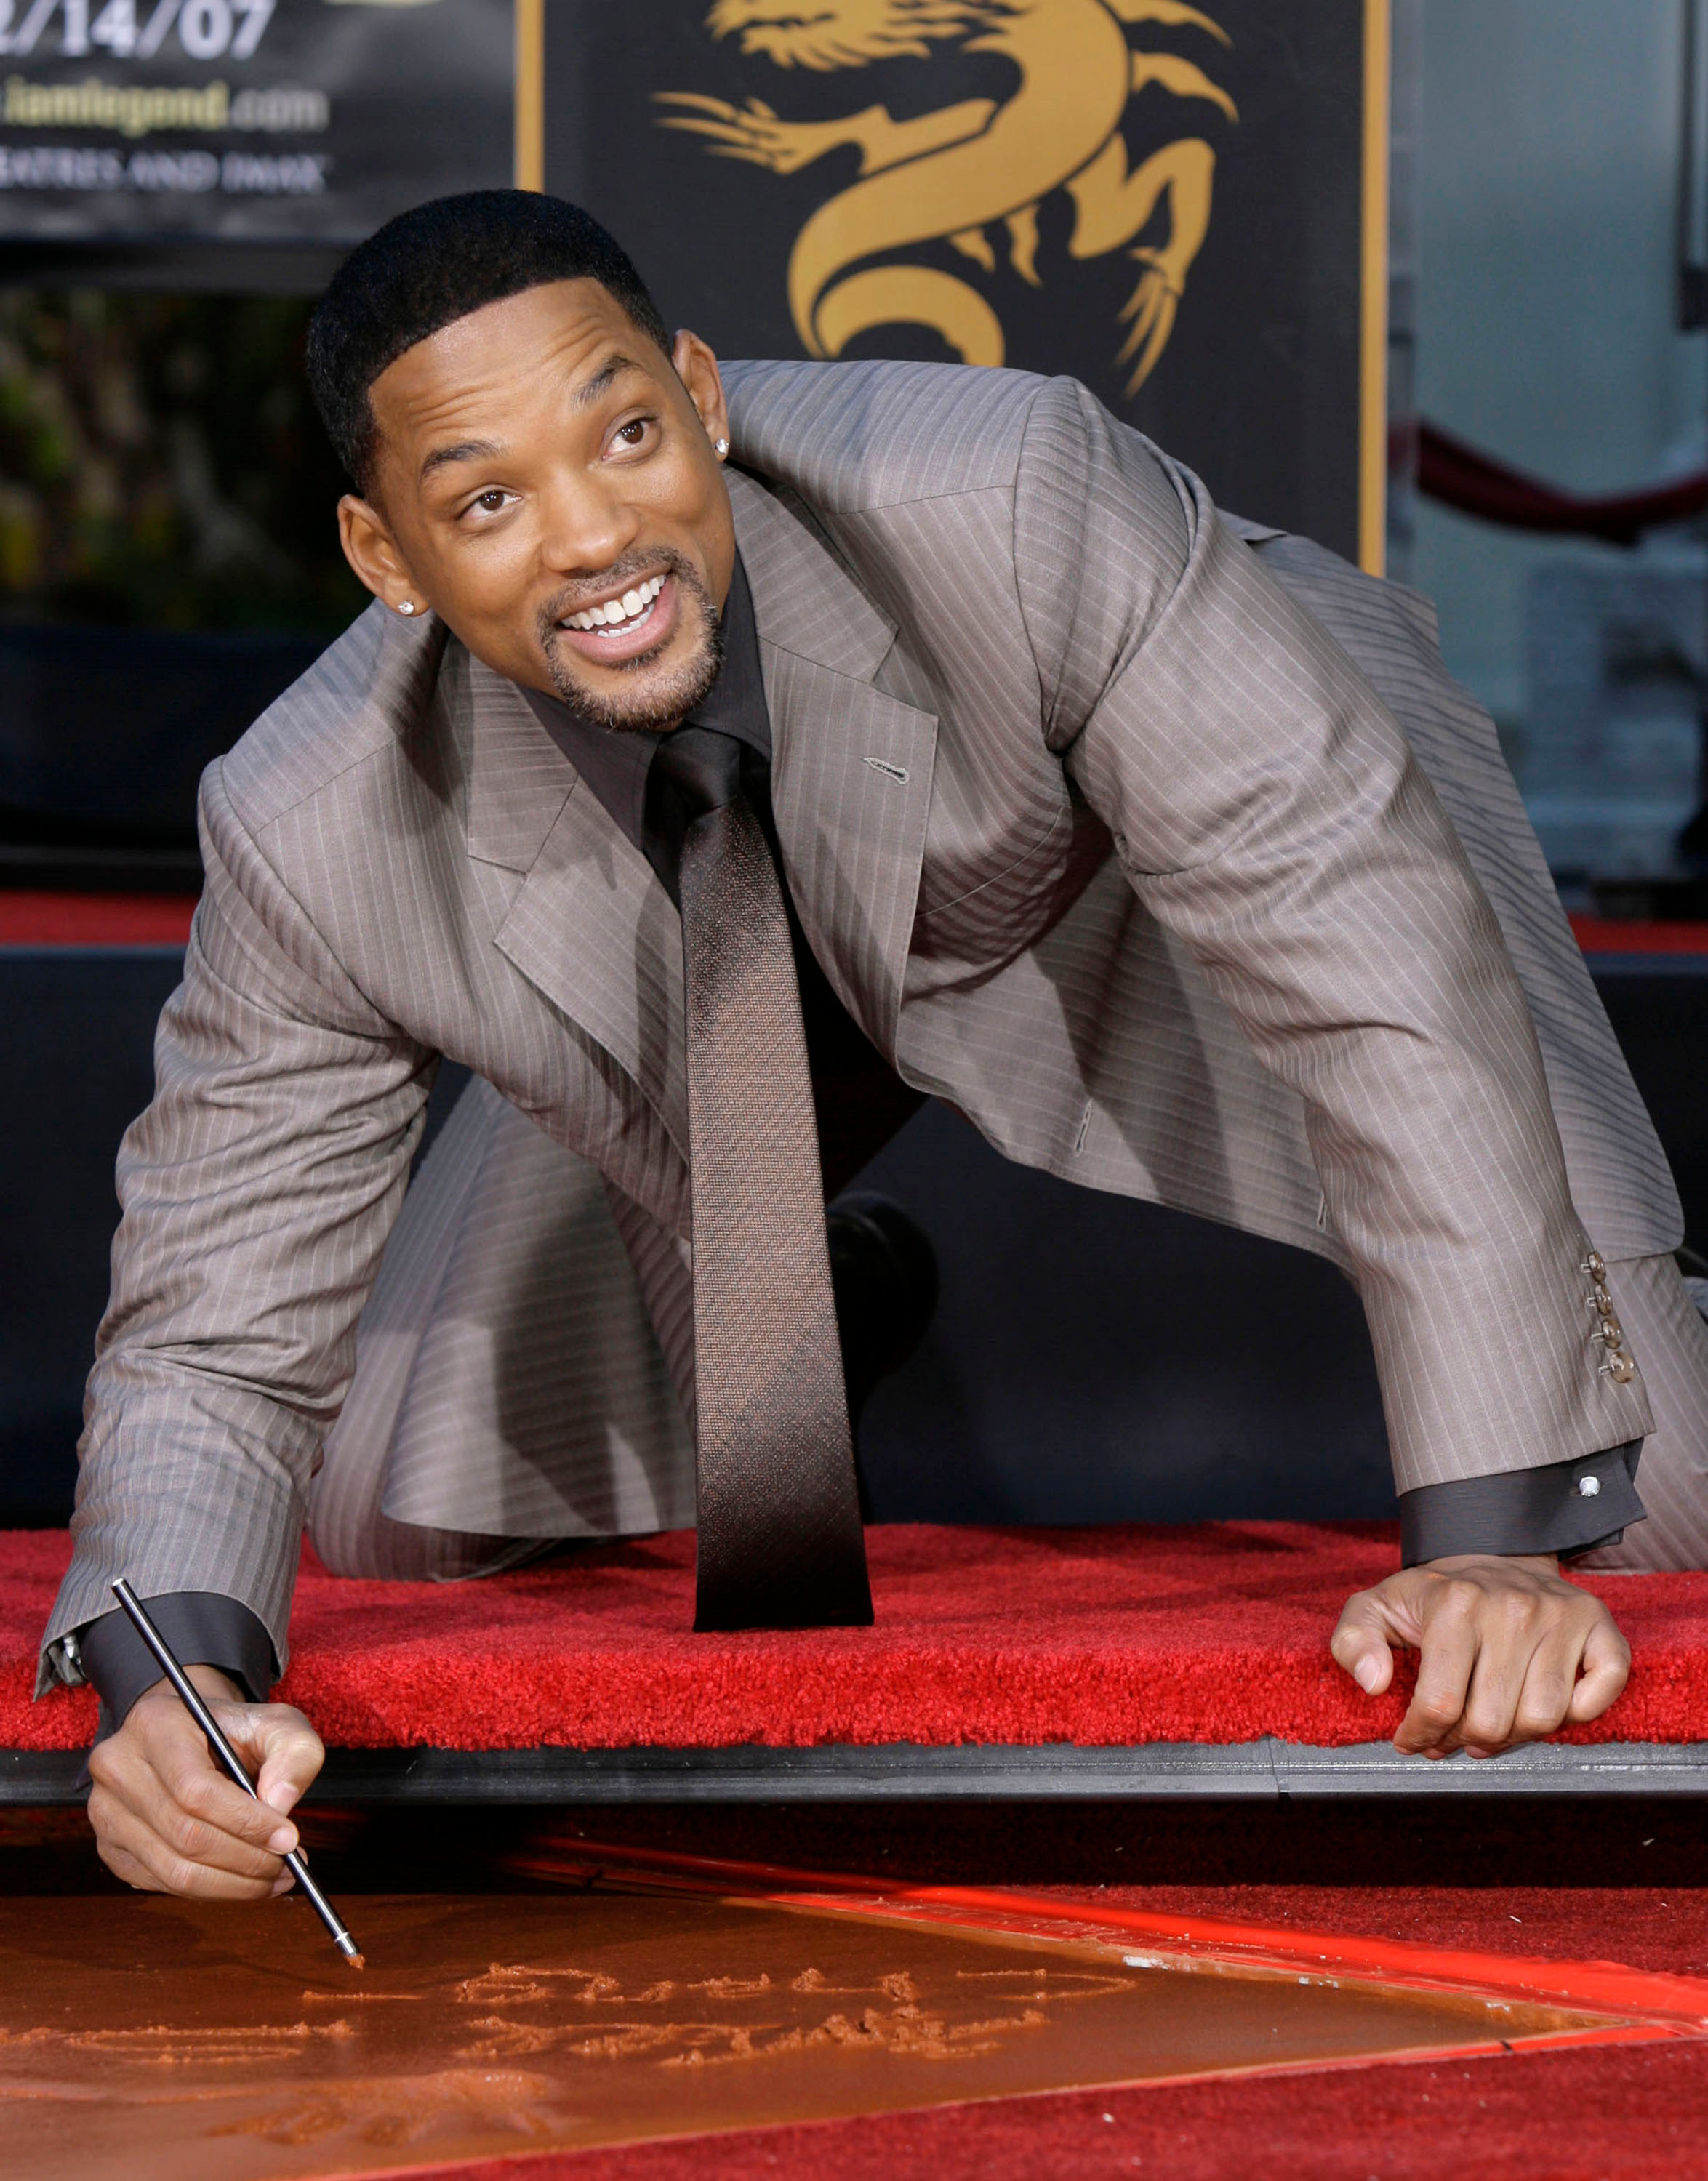 Will Smith signs his name in cement during a hand and footprint ceremony at Grauman's Chinese Theater in Los Angeles on Dec. 10, 2007.